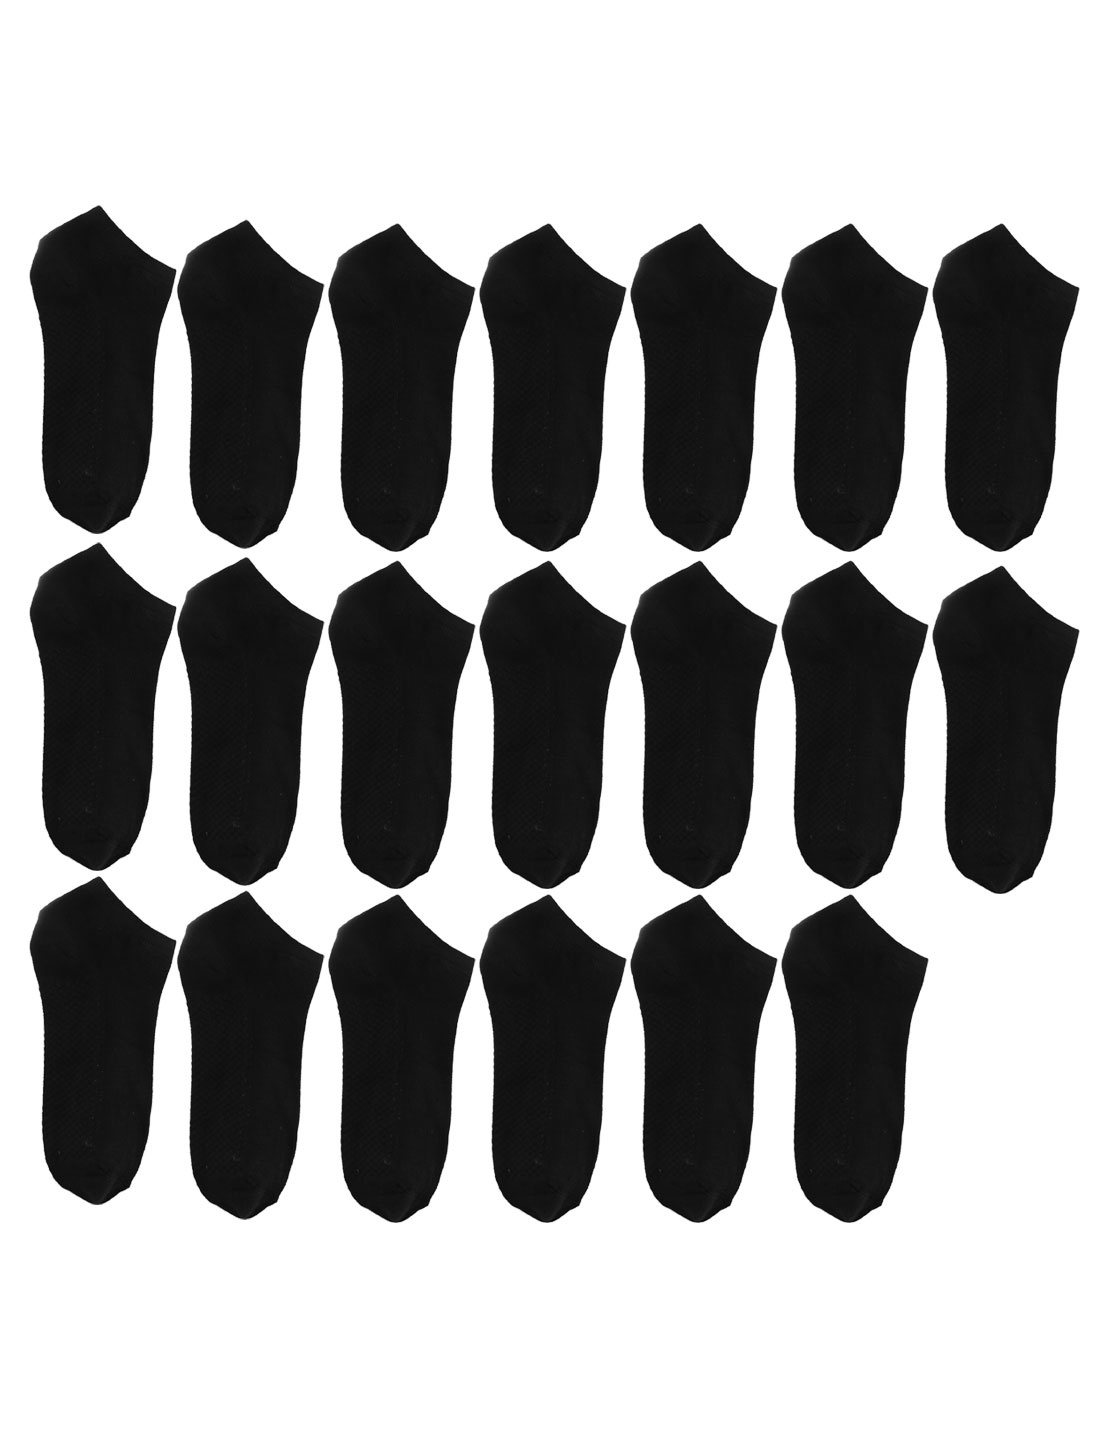 Woman Cotton Blends Elastic Low Cut Sports Casual Ankle Socks Black 10 Pairs